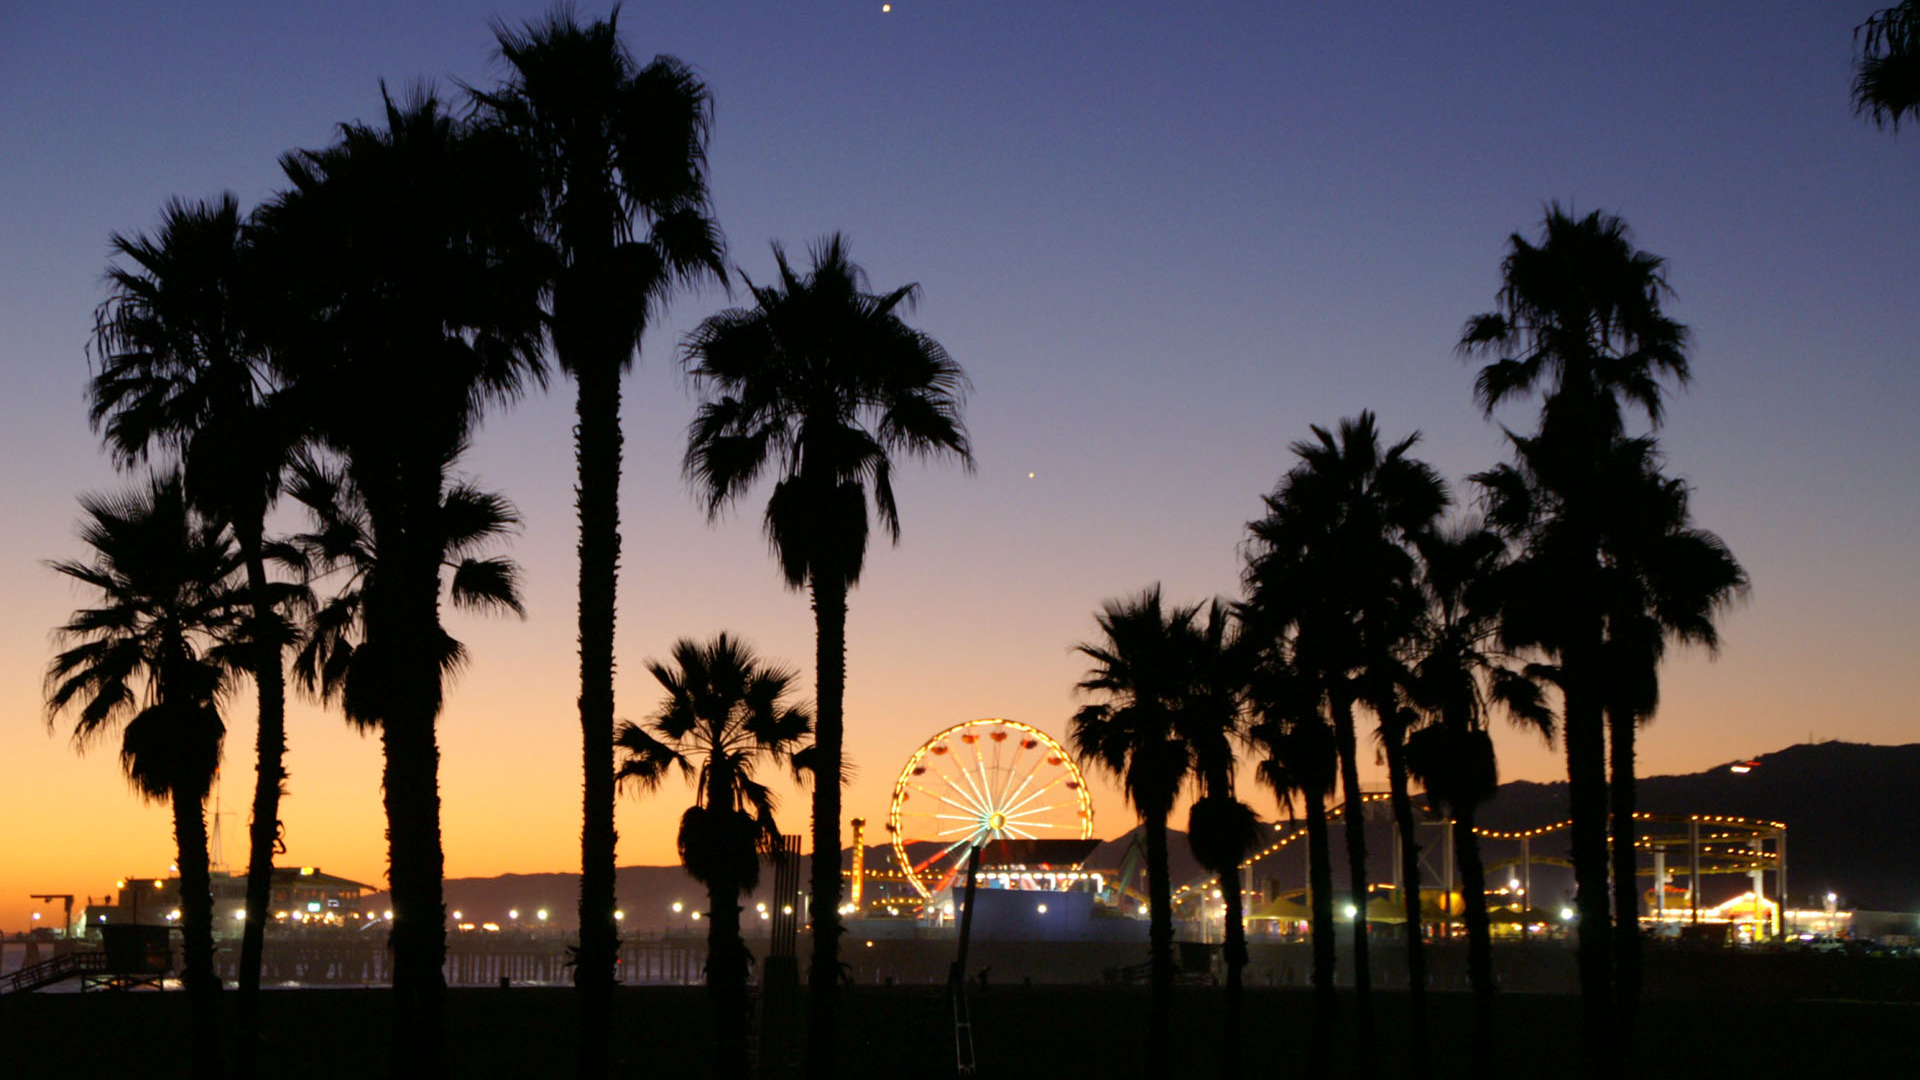 Free download California Palm Trees